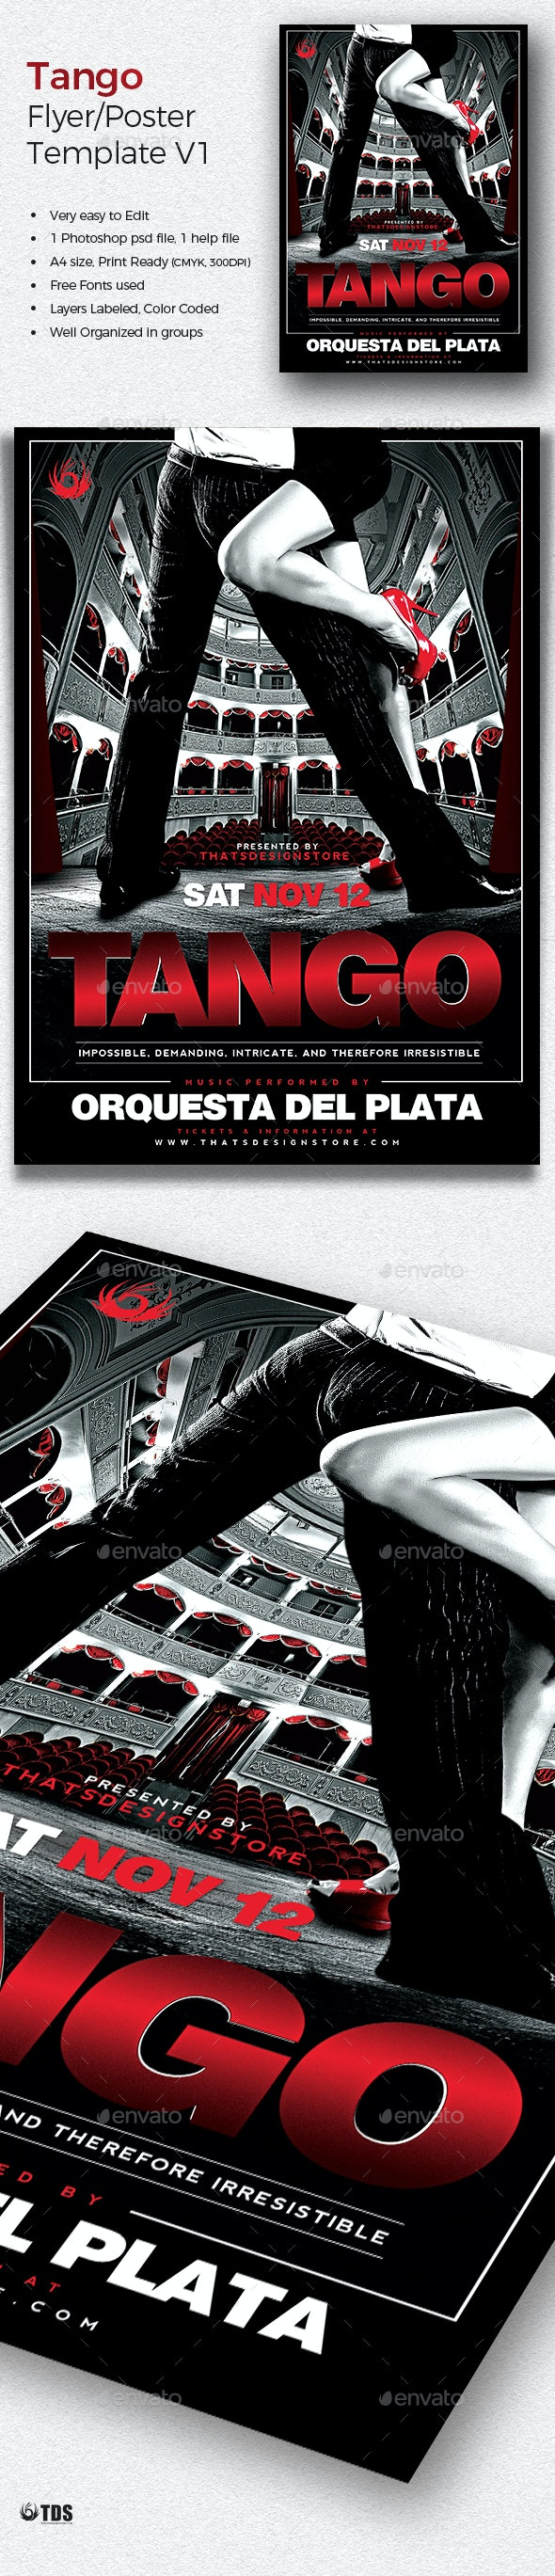 Tango Flyer Template V1 - Concerts Events